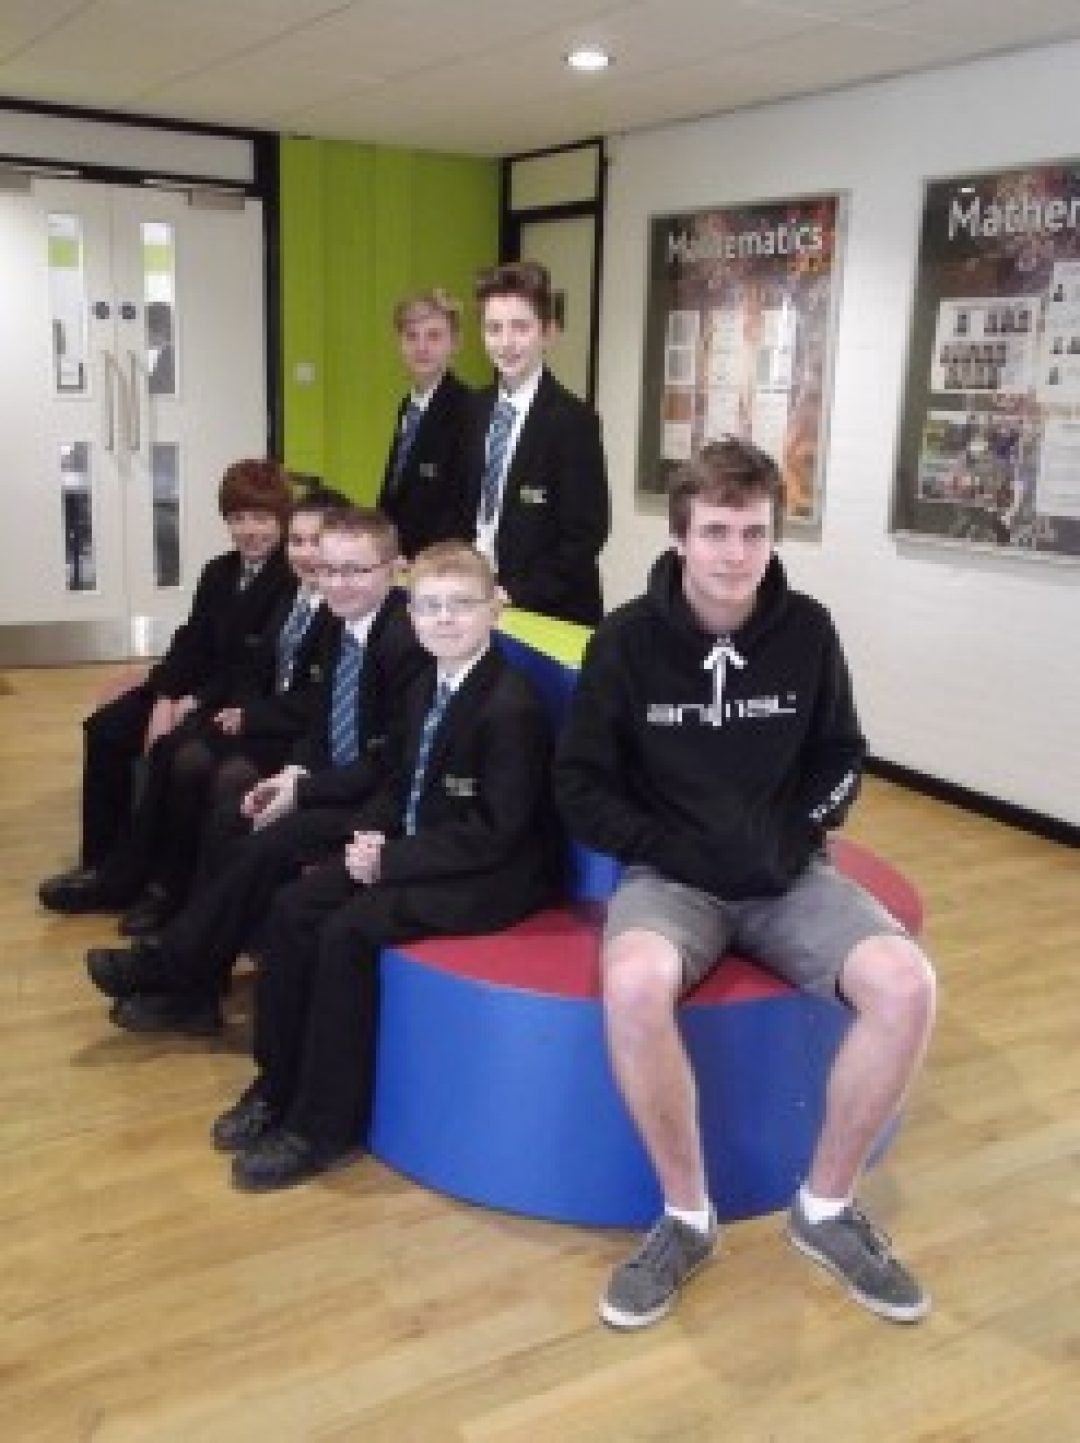 James Groves (far right) sat with a group of Year 7s on his newly installed seat